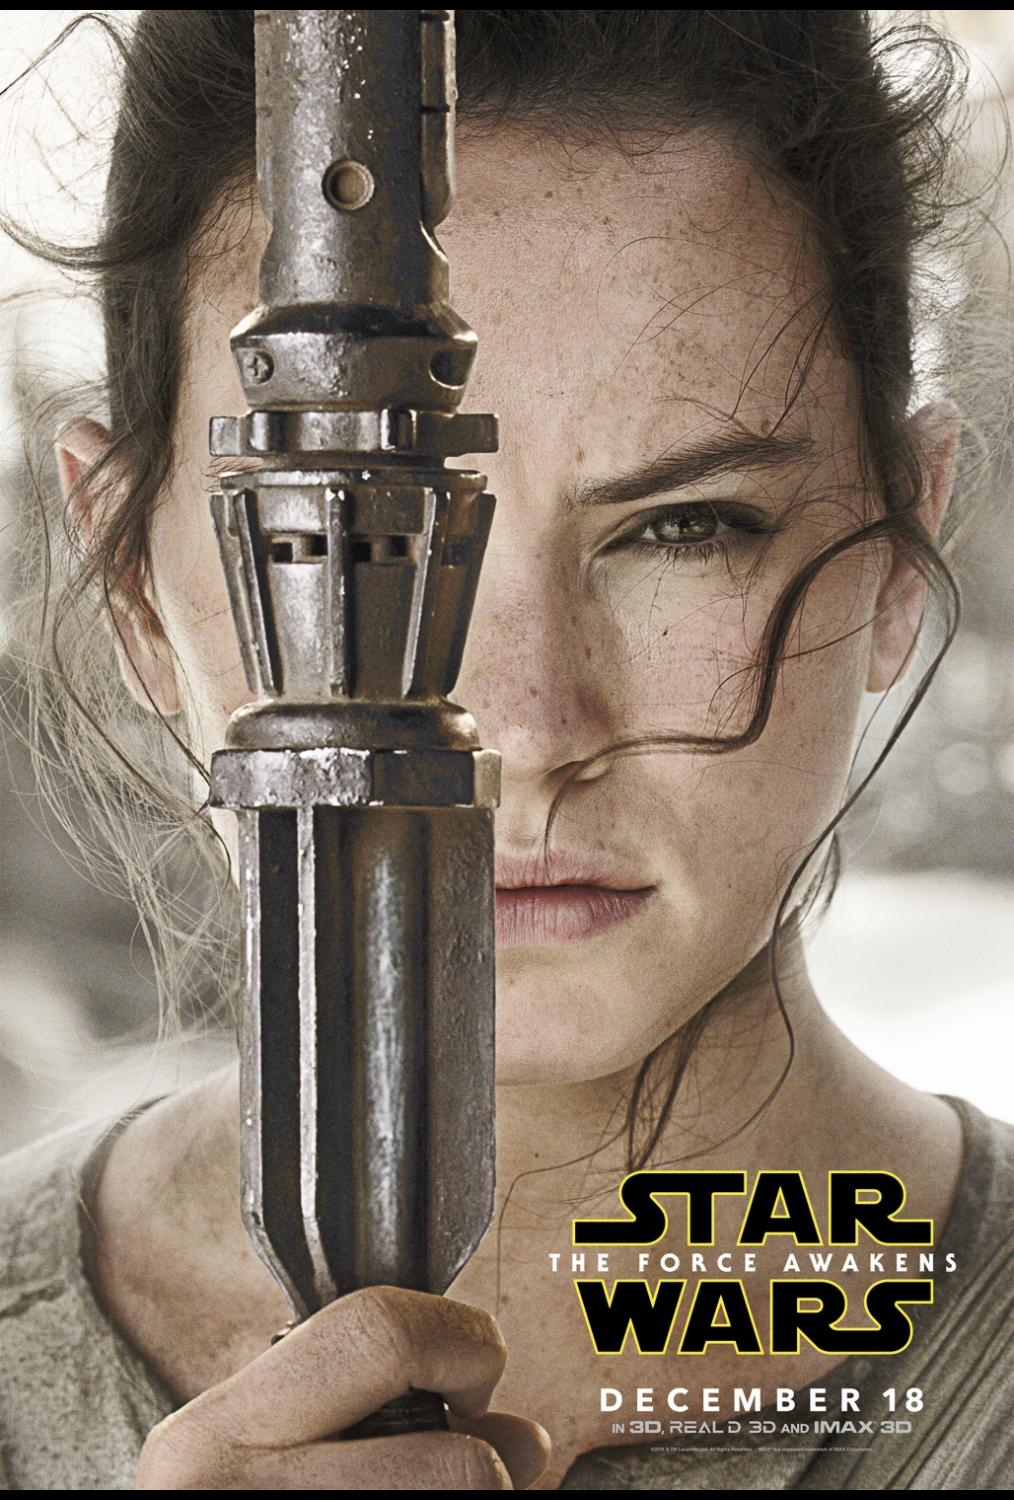 #StarWars #TheForceAwakens New STAR WARS: THE FORCE AWAKENS Character Posters